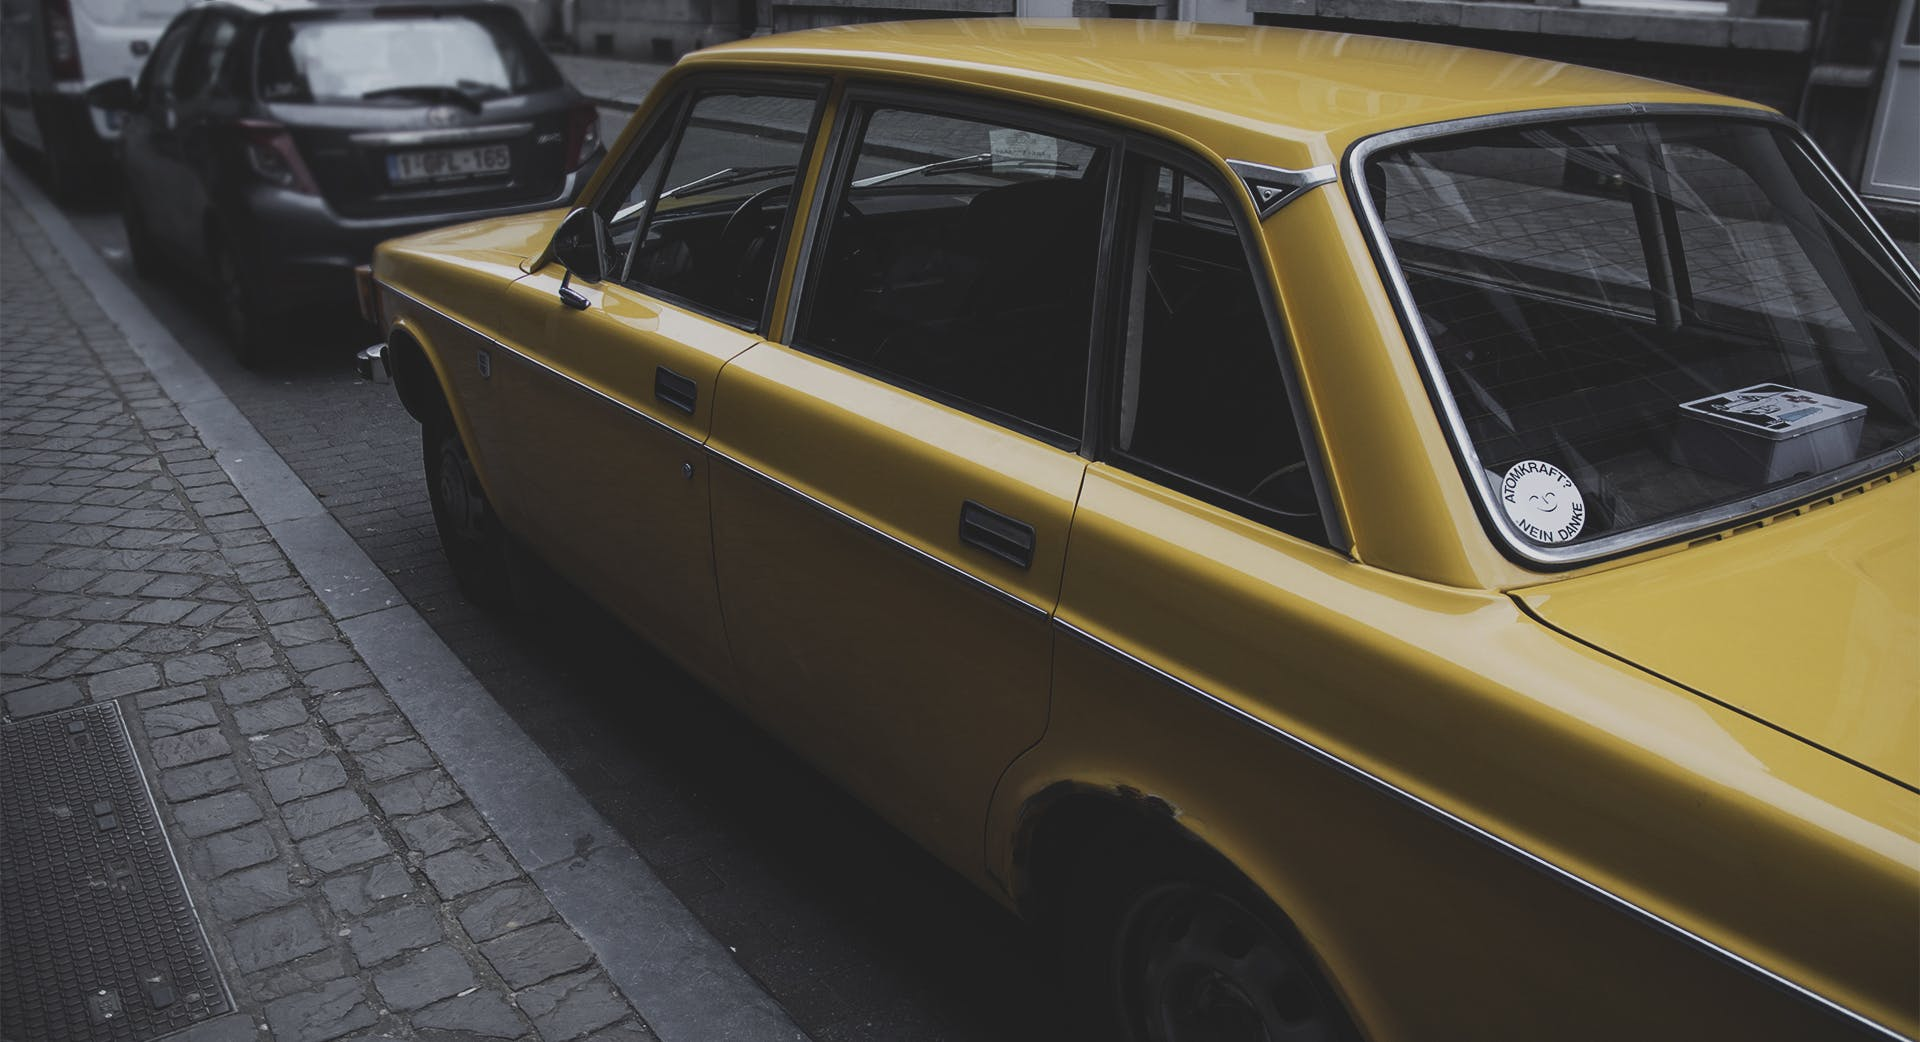 Free stock photo of car, old car, volvo, yellow car